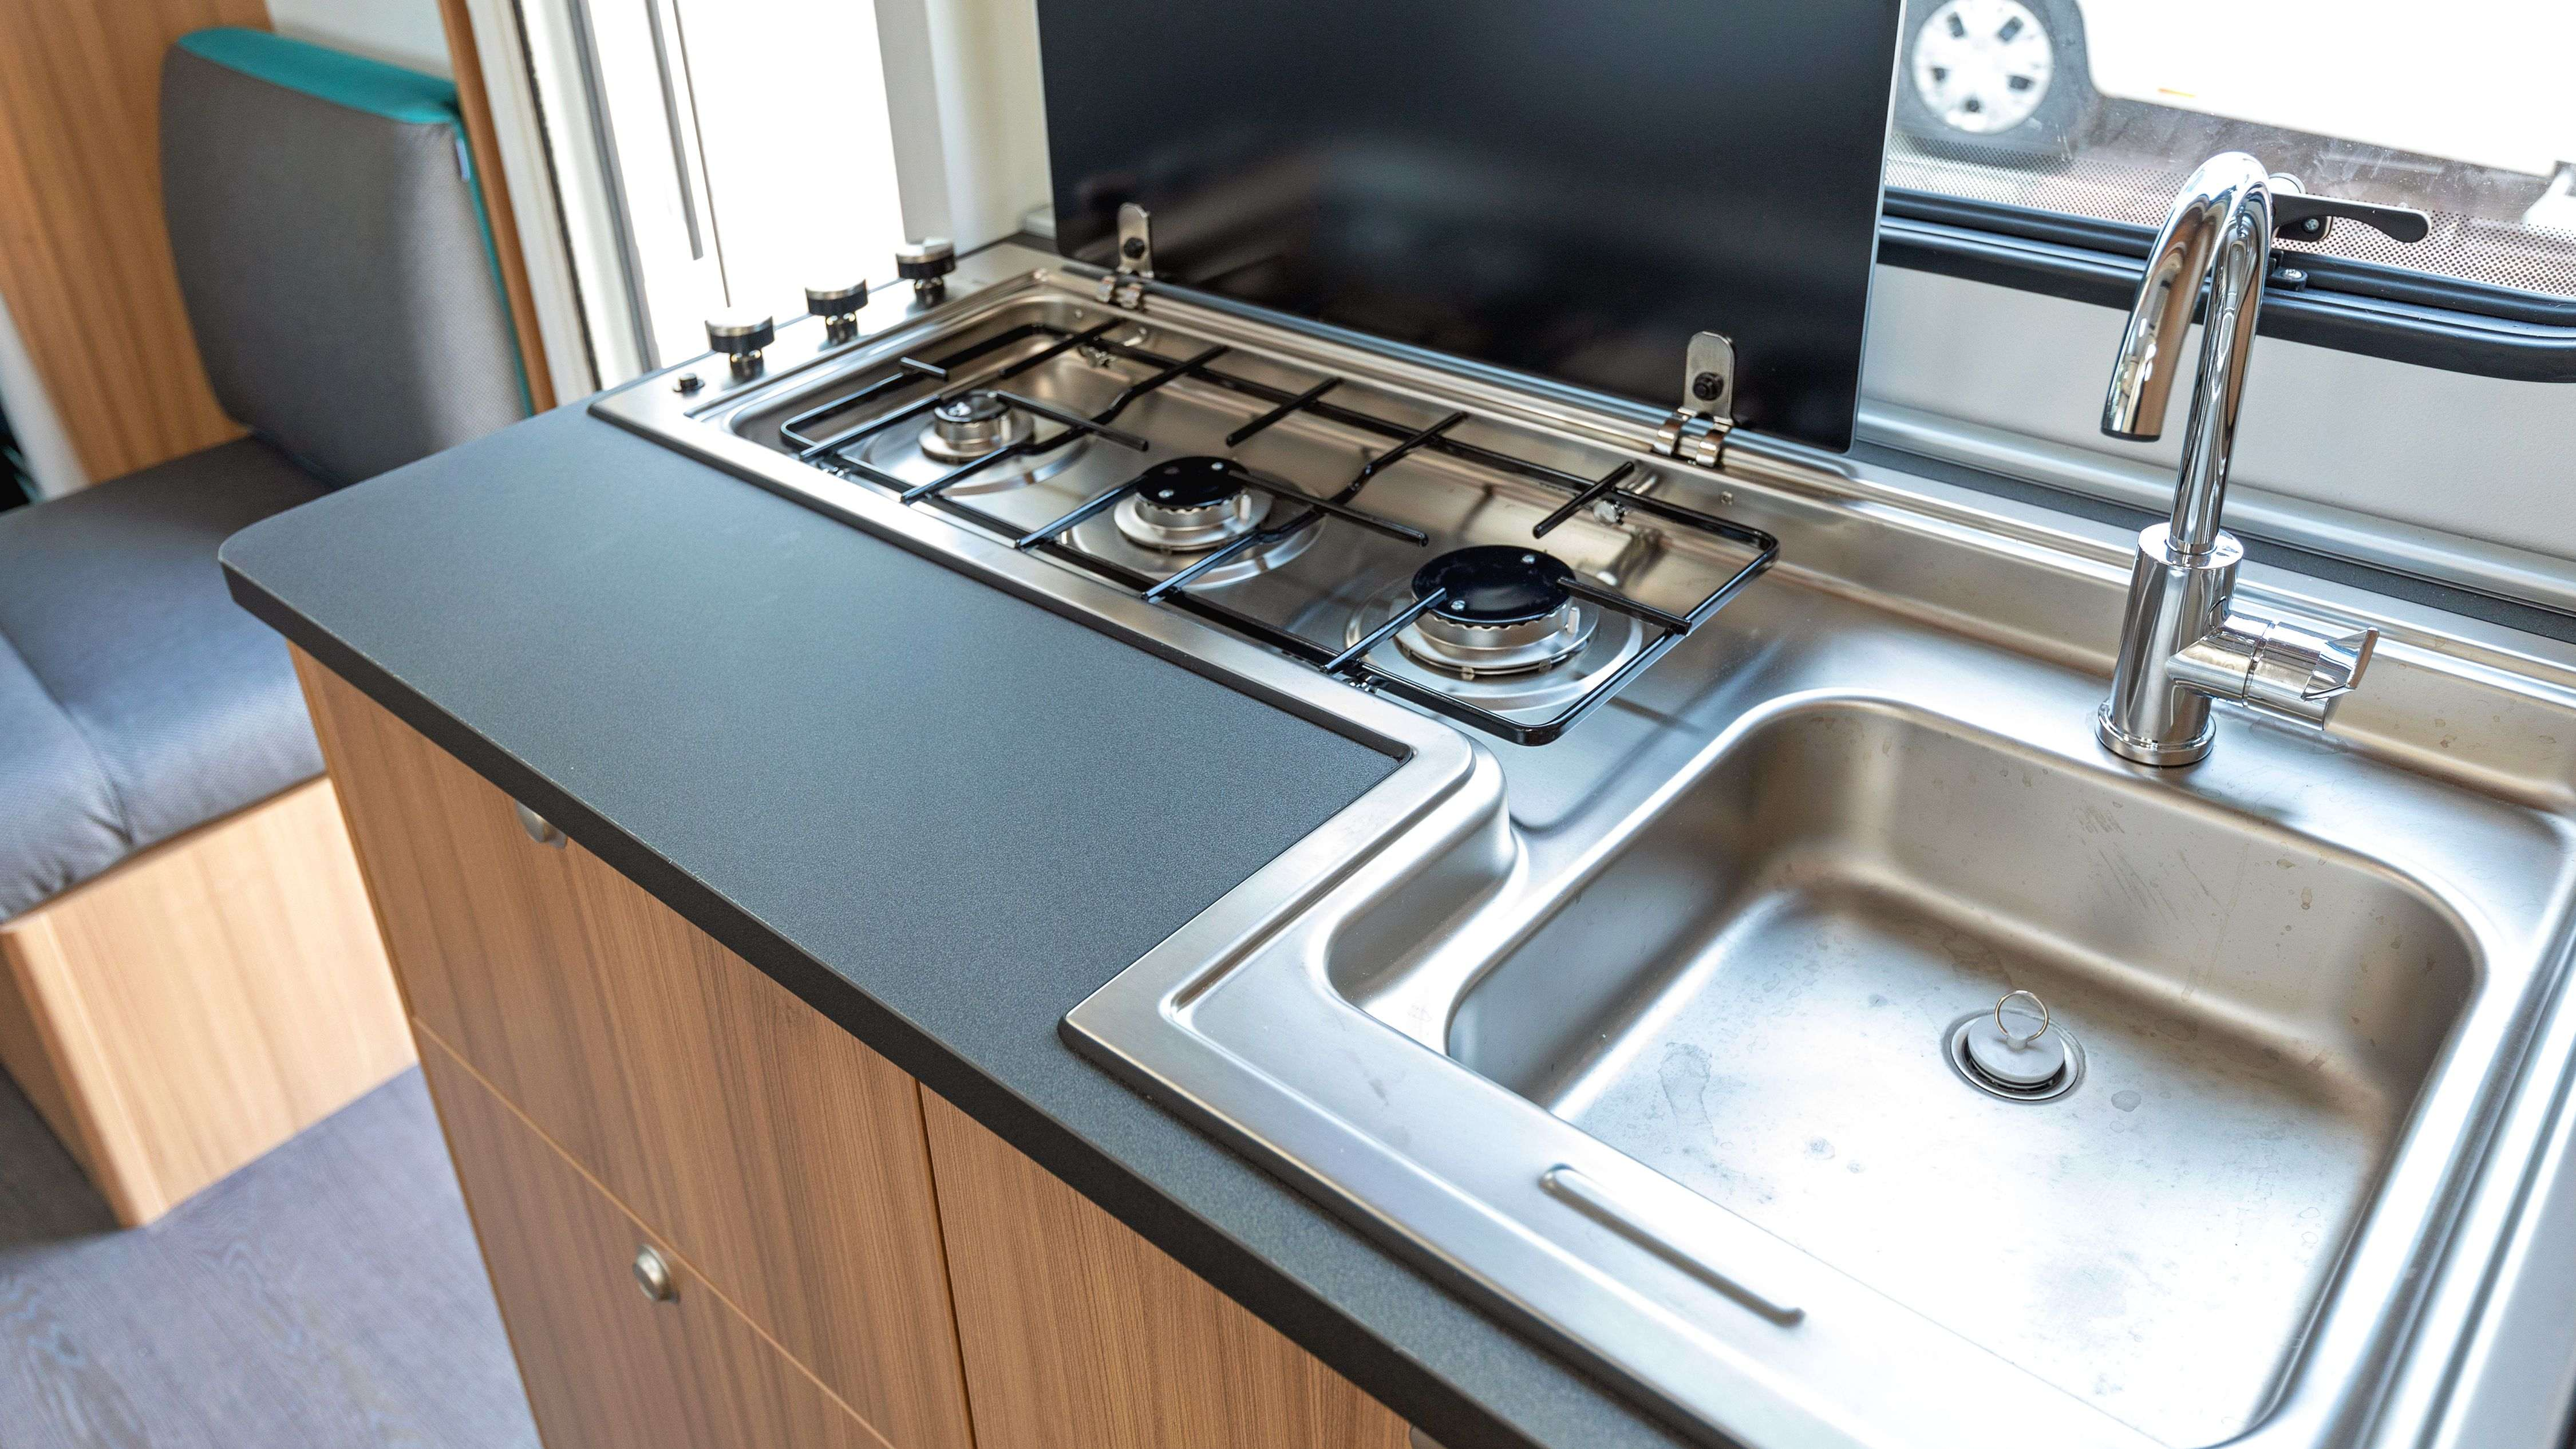 How to choose your kitchenette?